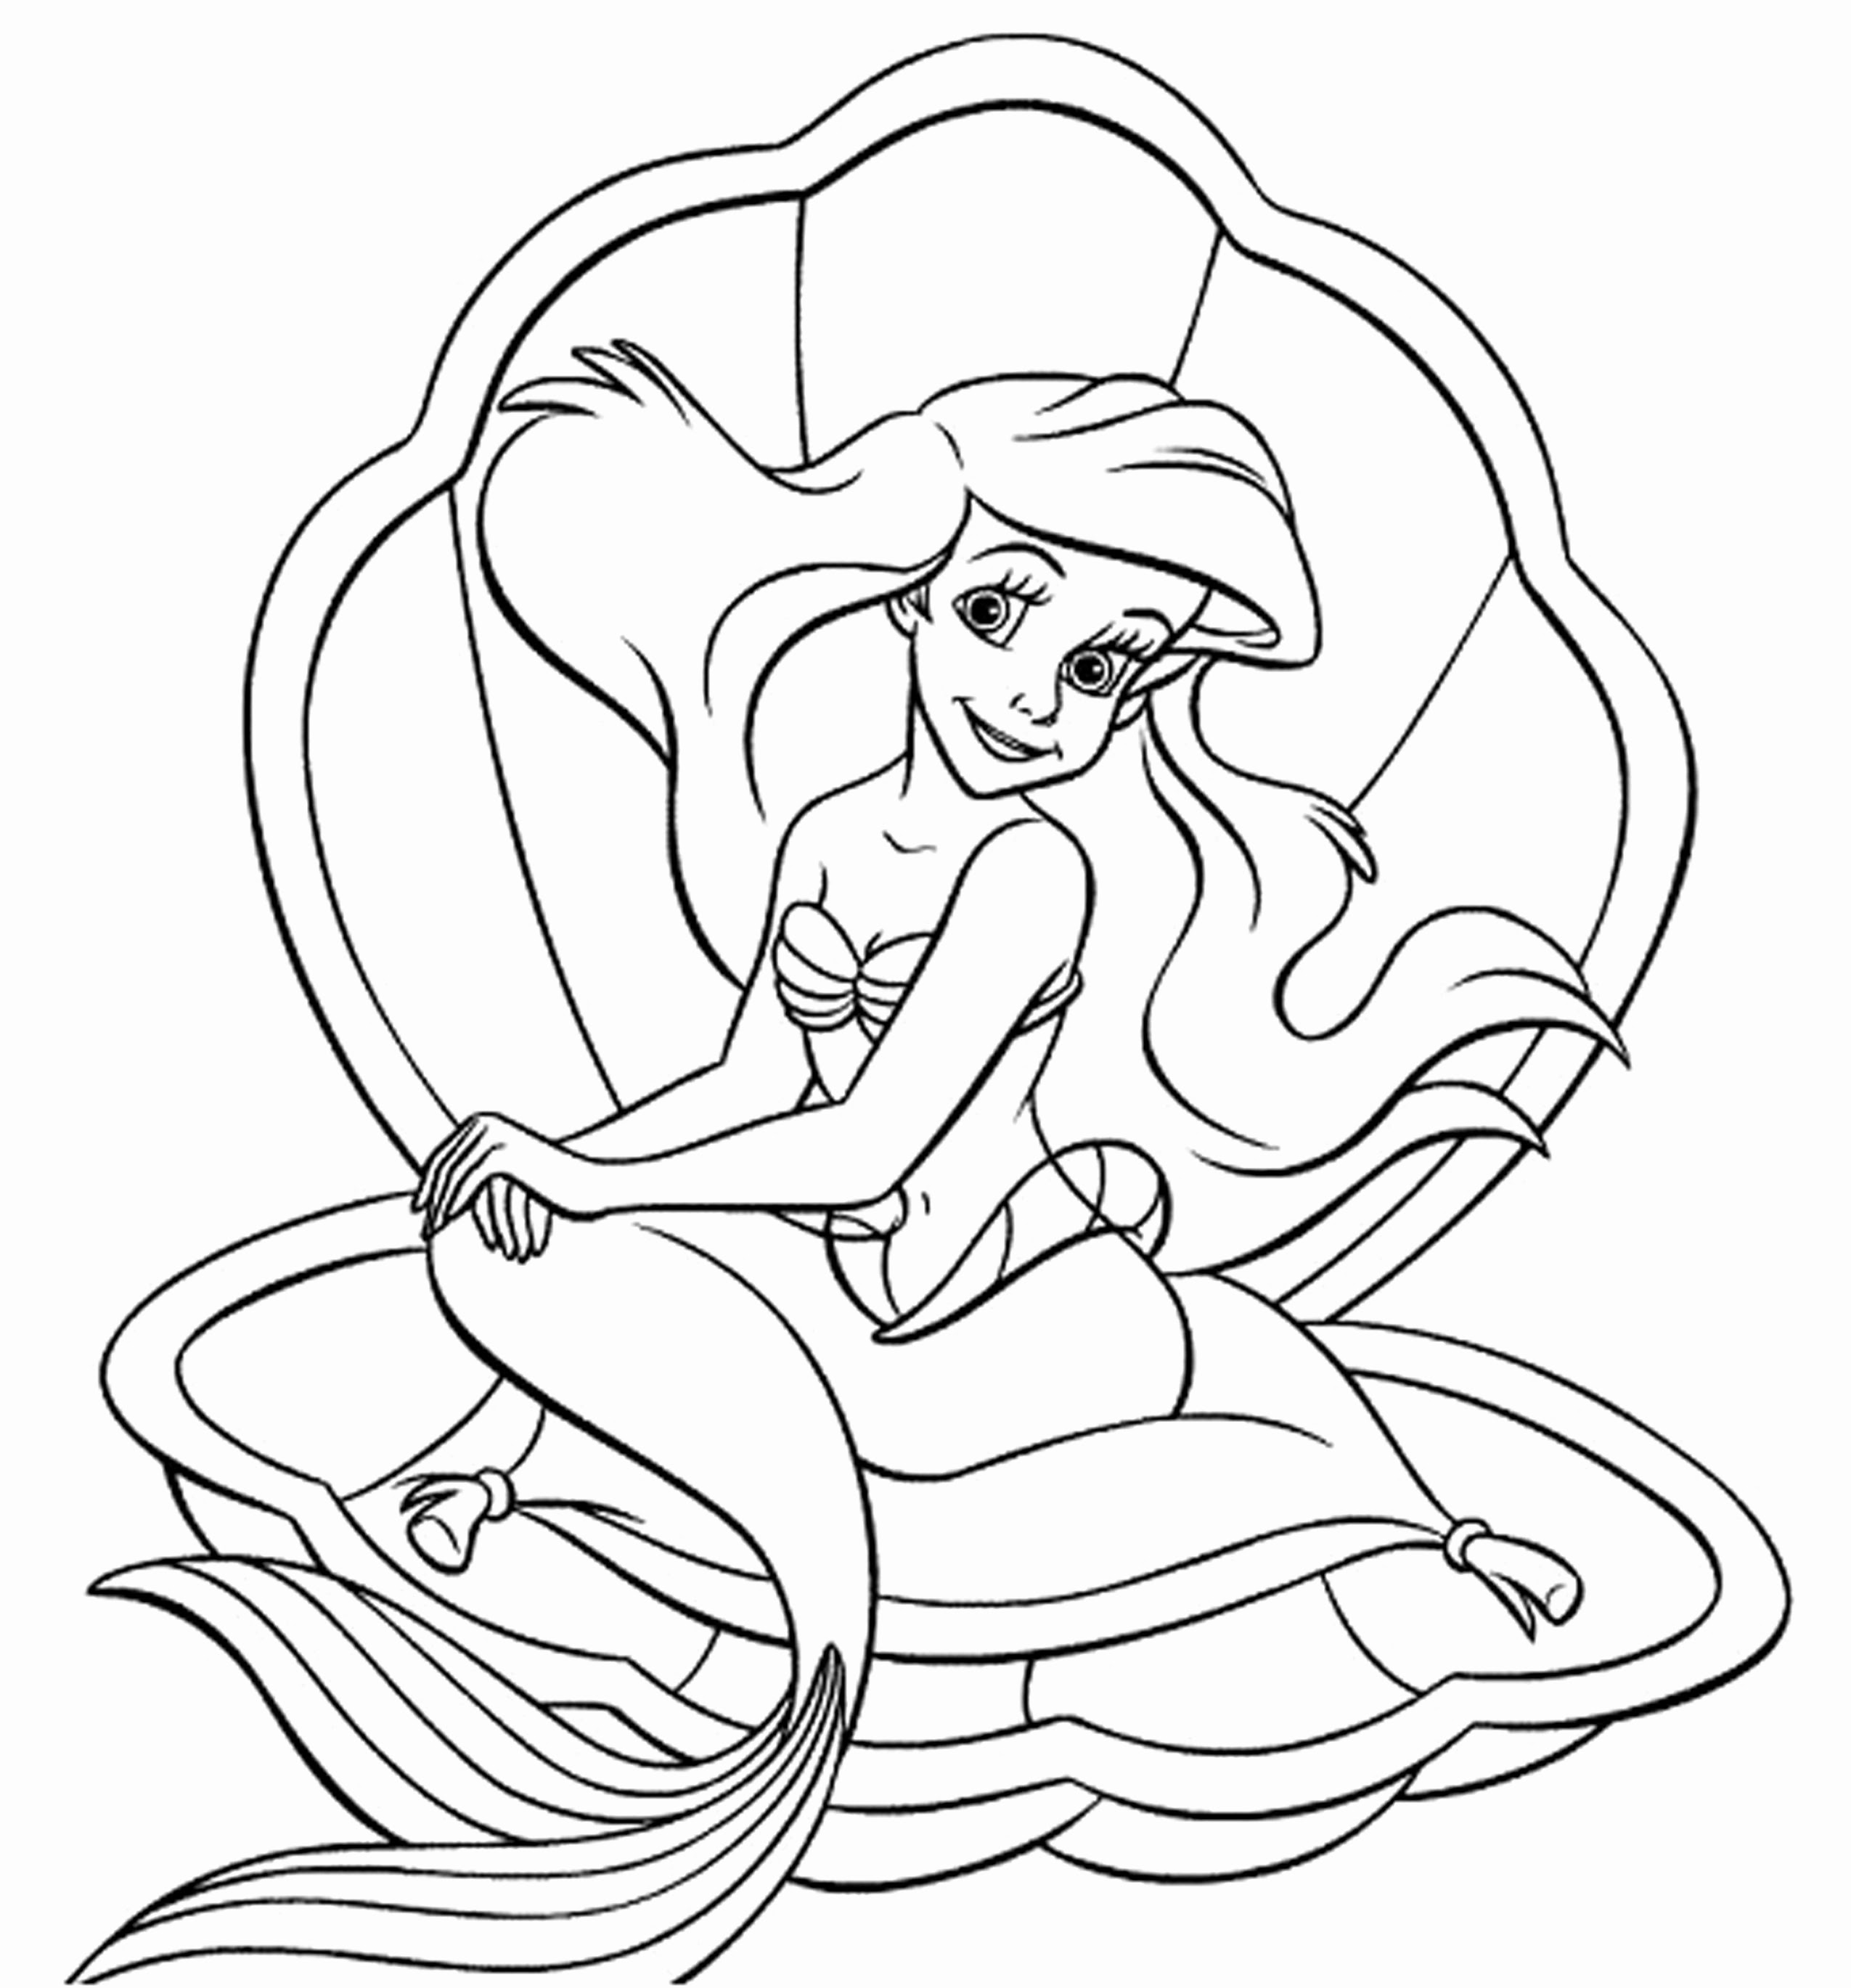 Baby Ariel Coloring Pages At Getdrawingscom Free For Personal Use